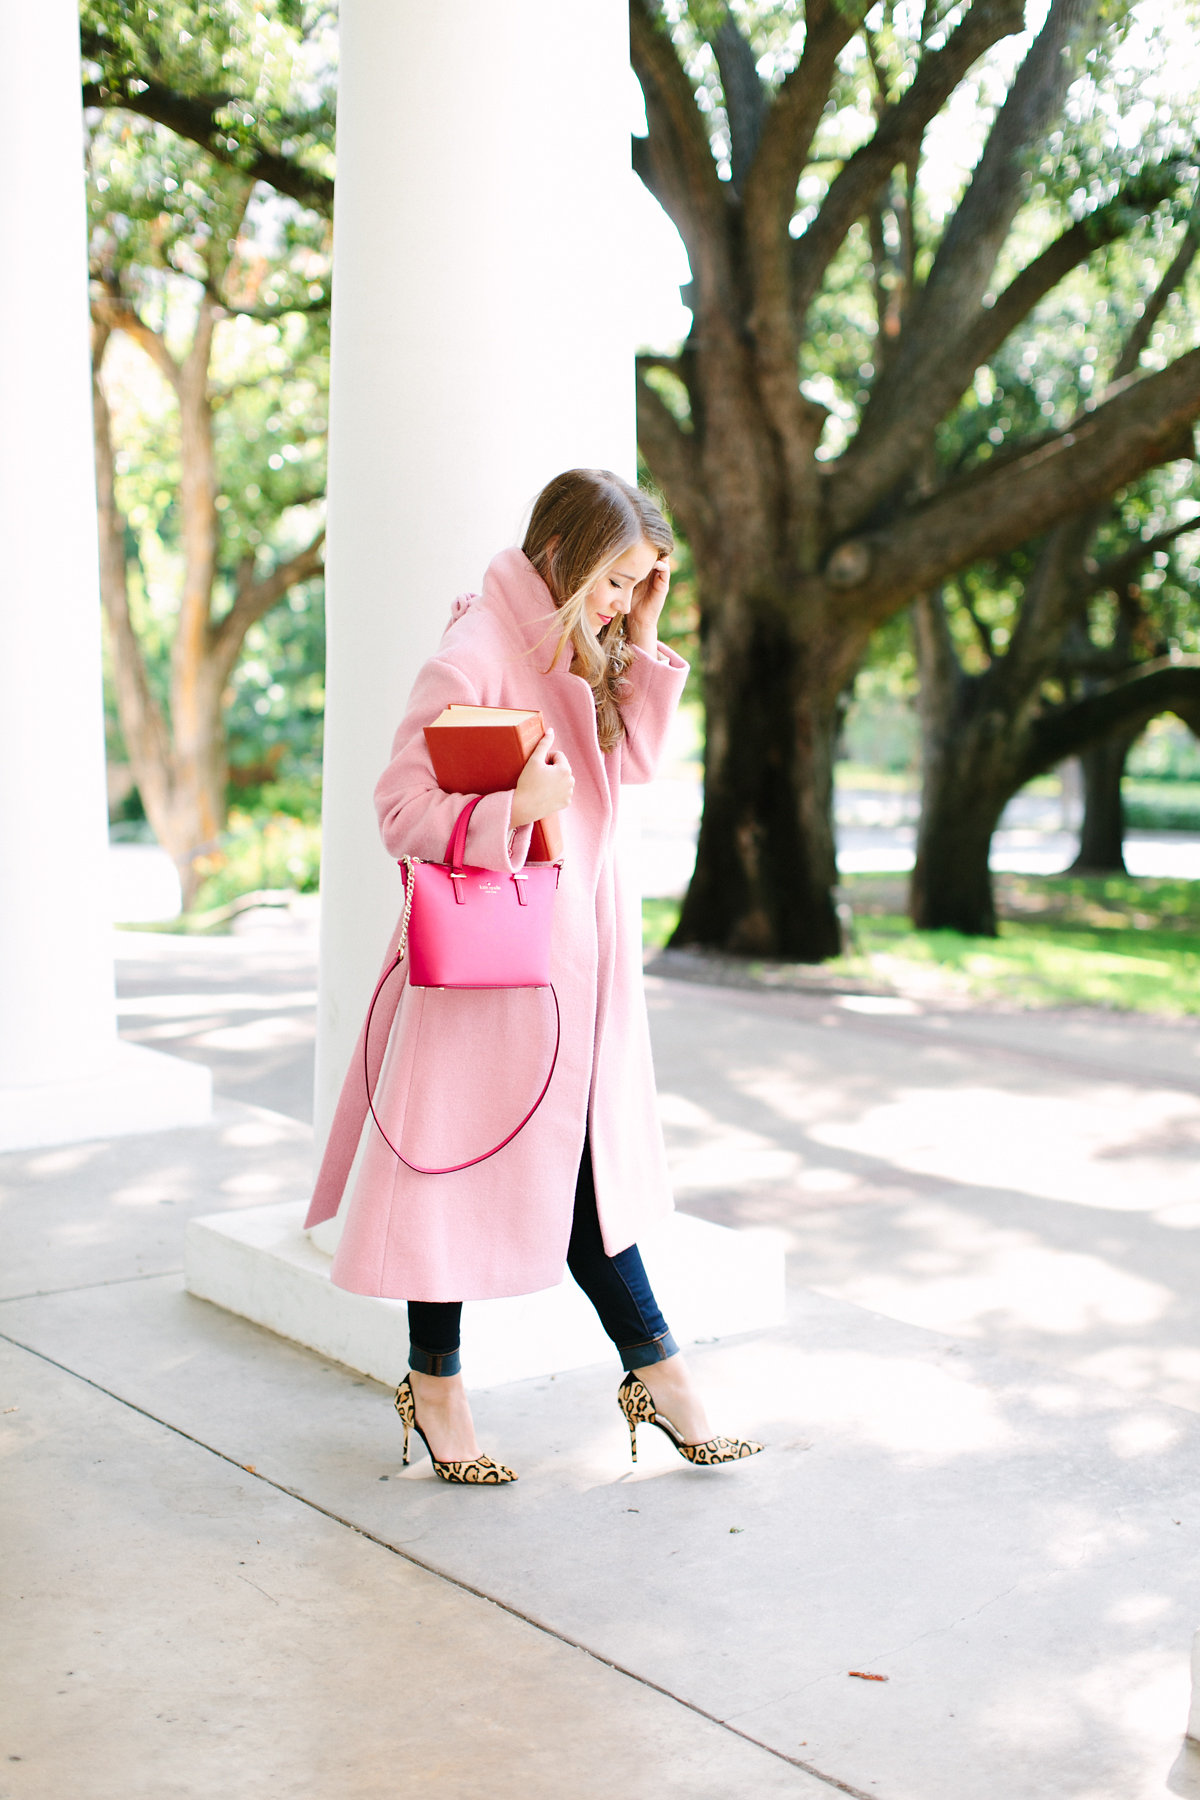 dallas-fashion-blogger-a-lonestar-state-of-southern-kate-spade-8064